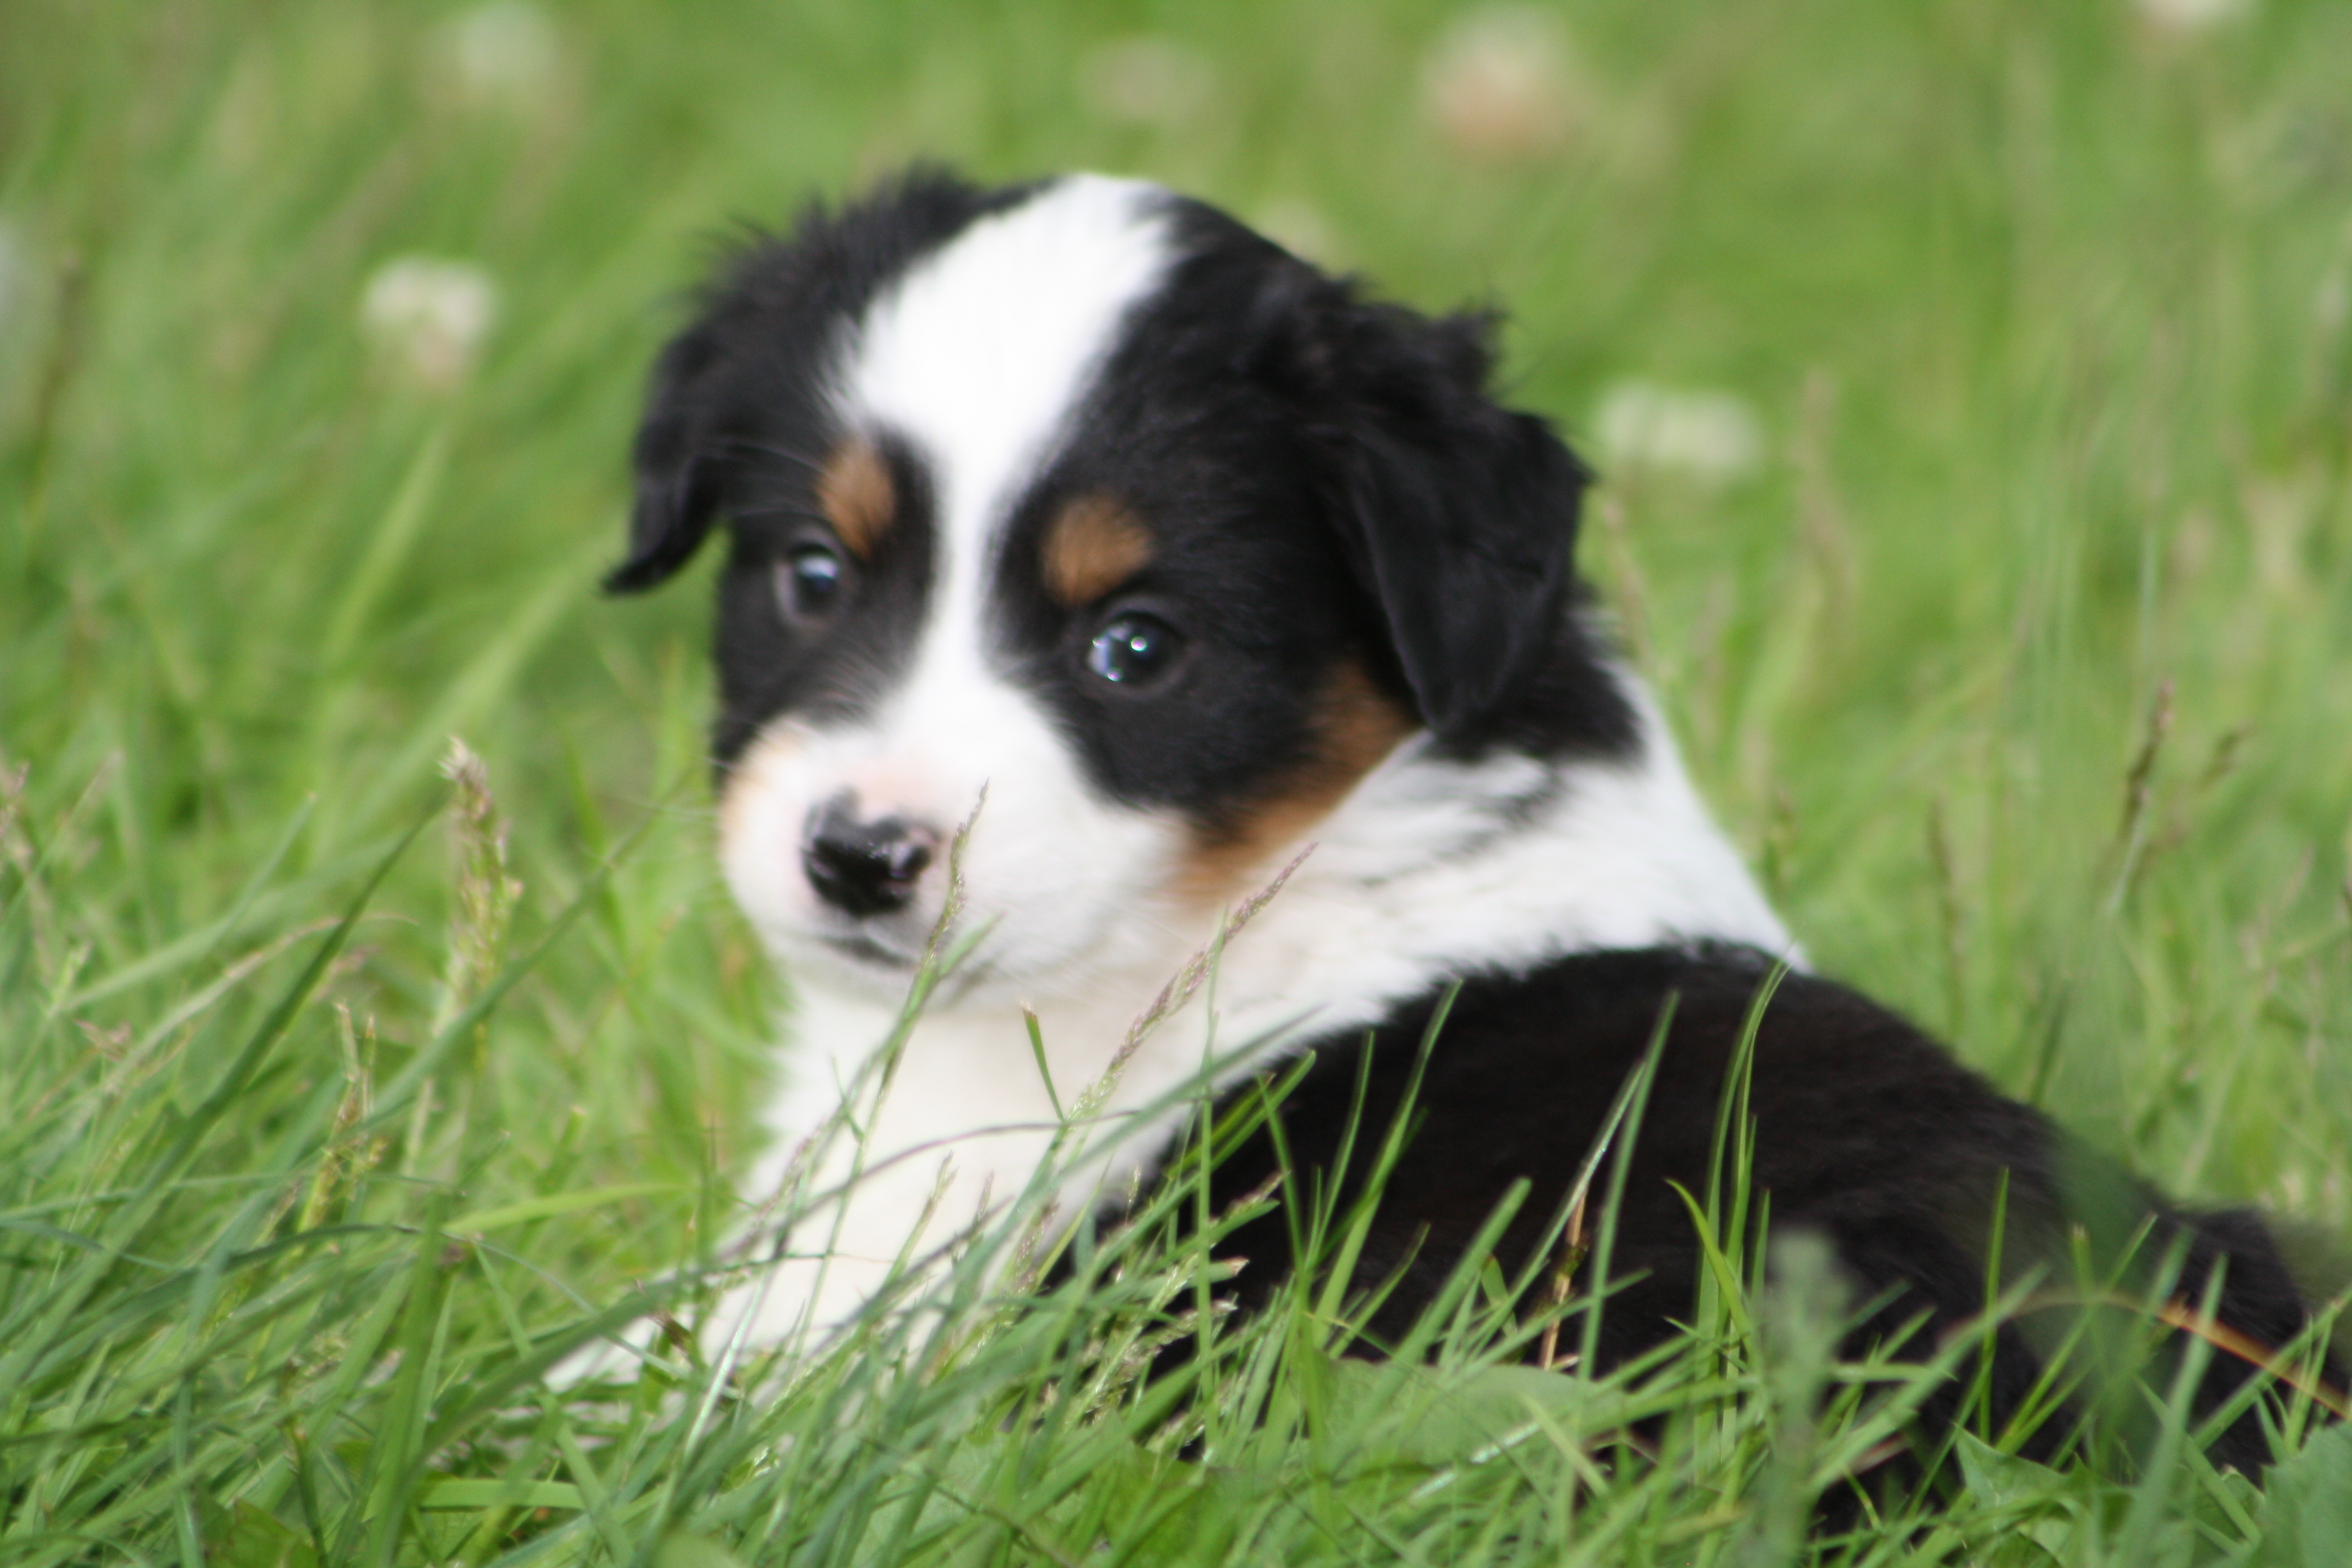 Add photos Miniature Australian Shepherd dog in the grass in your blog